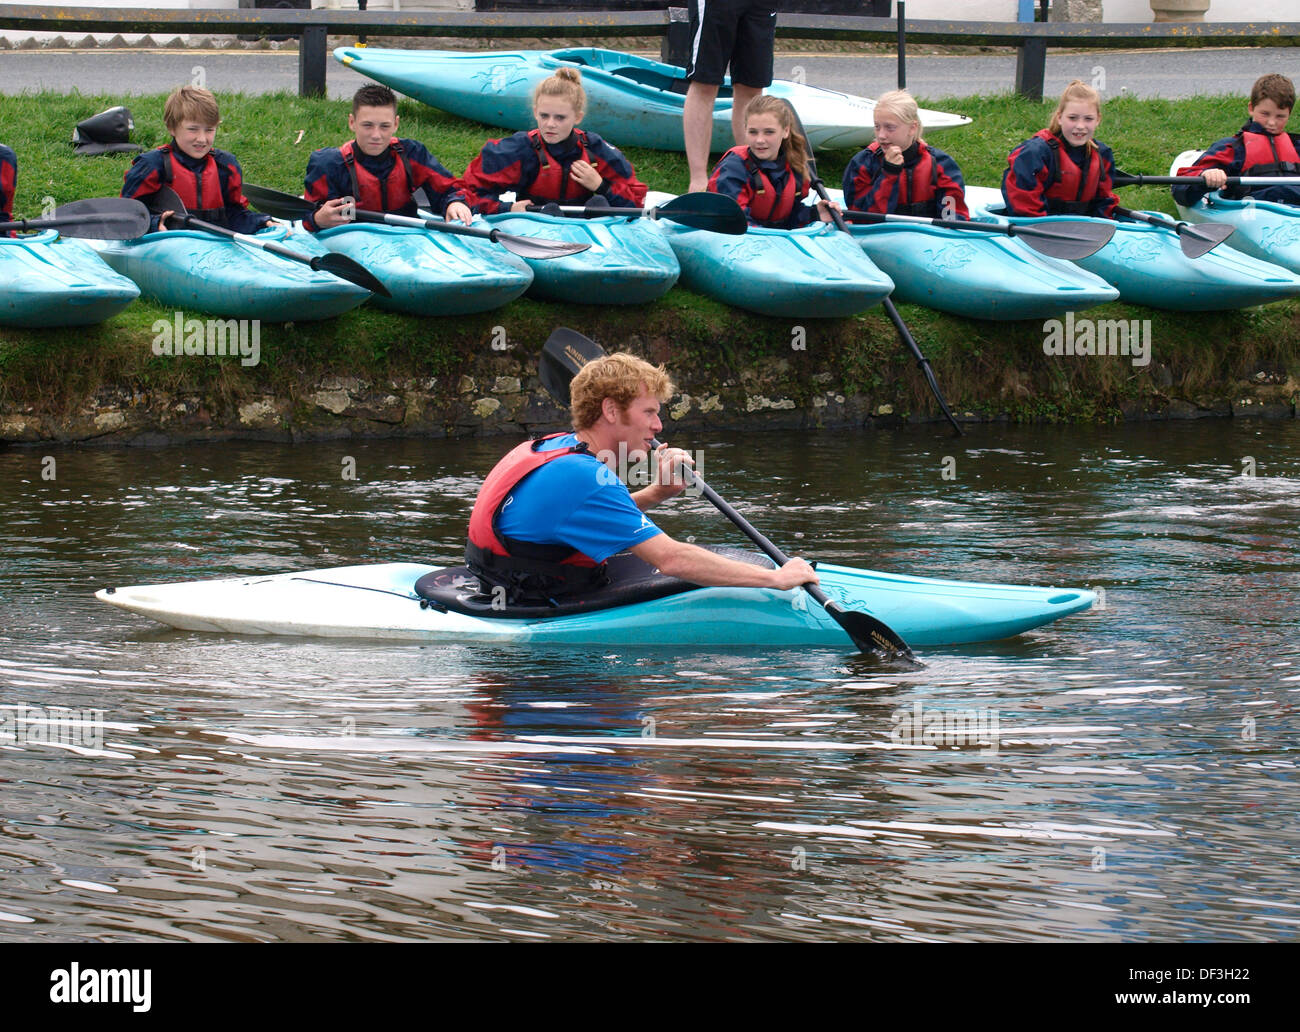 Children being instructed on how to kayak, UK 2013 - Stock Image